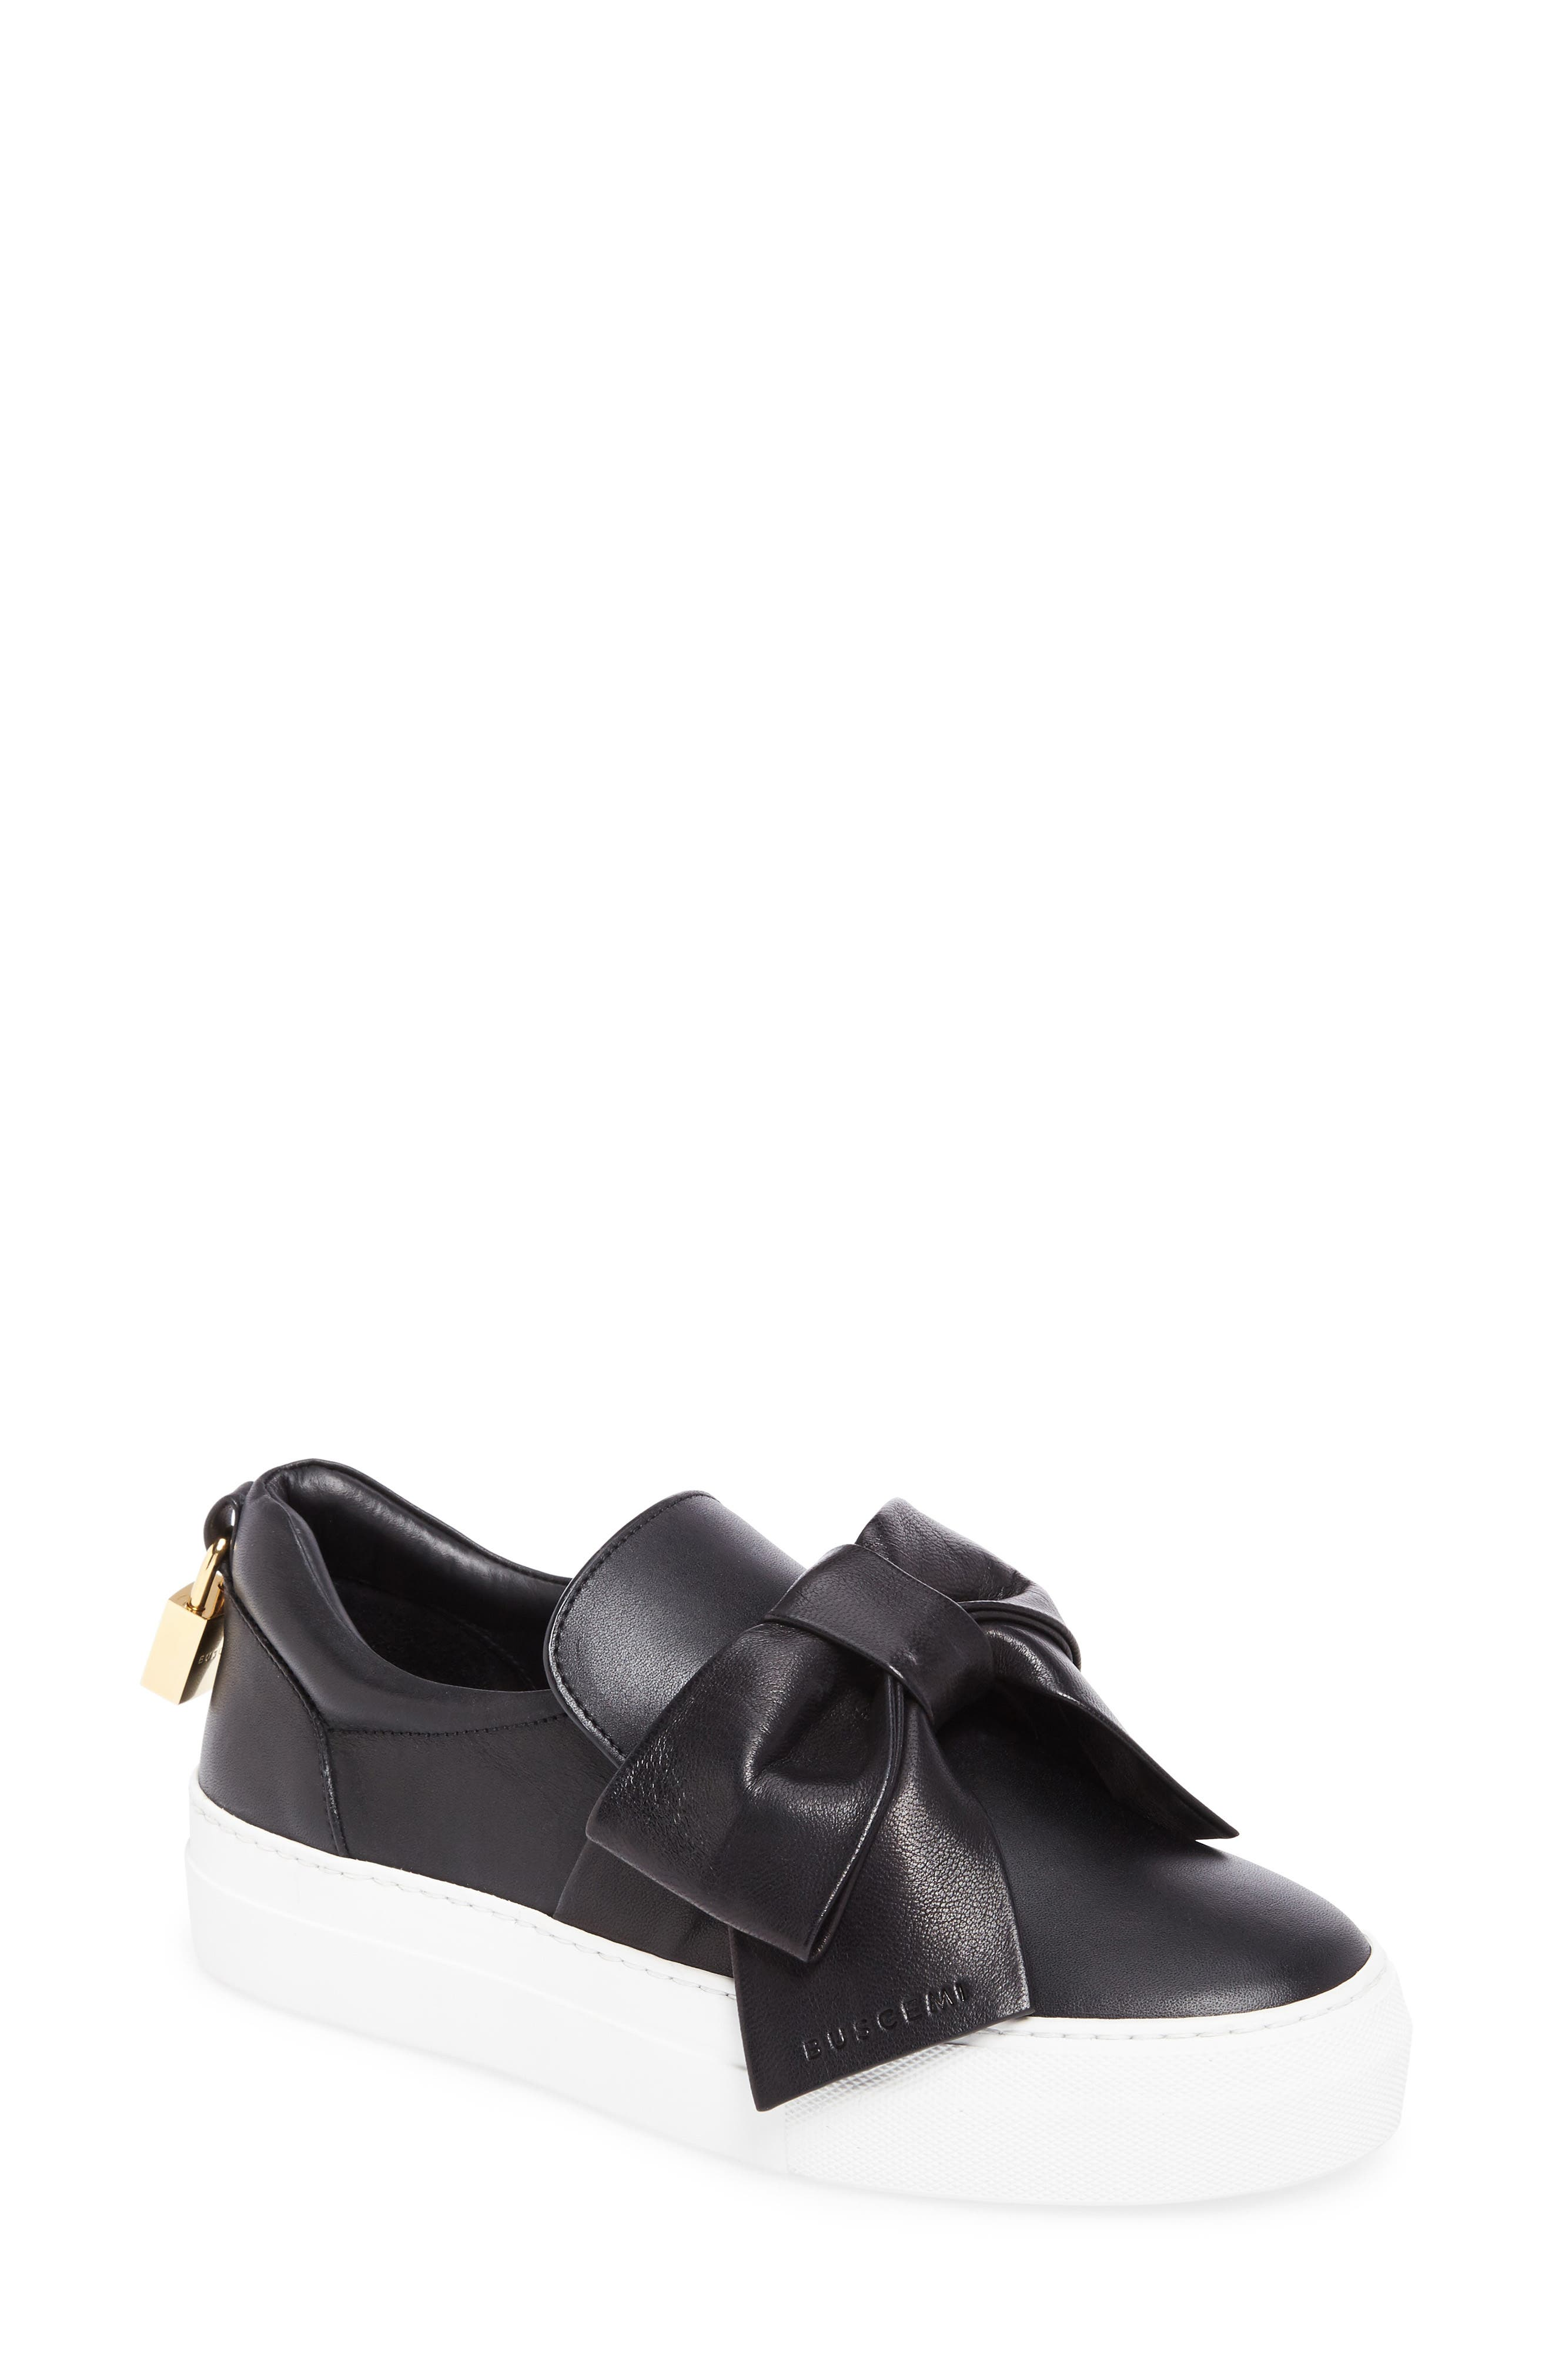 Main Image - Buscemi Bow Slip-On Sneaker (Women)